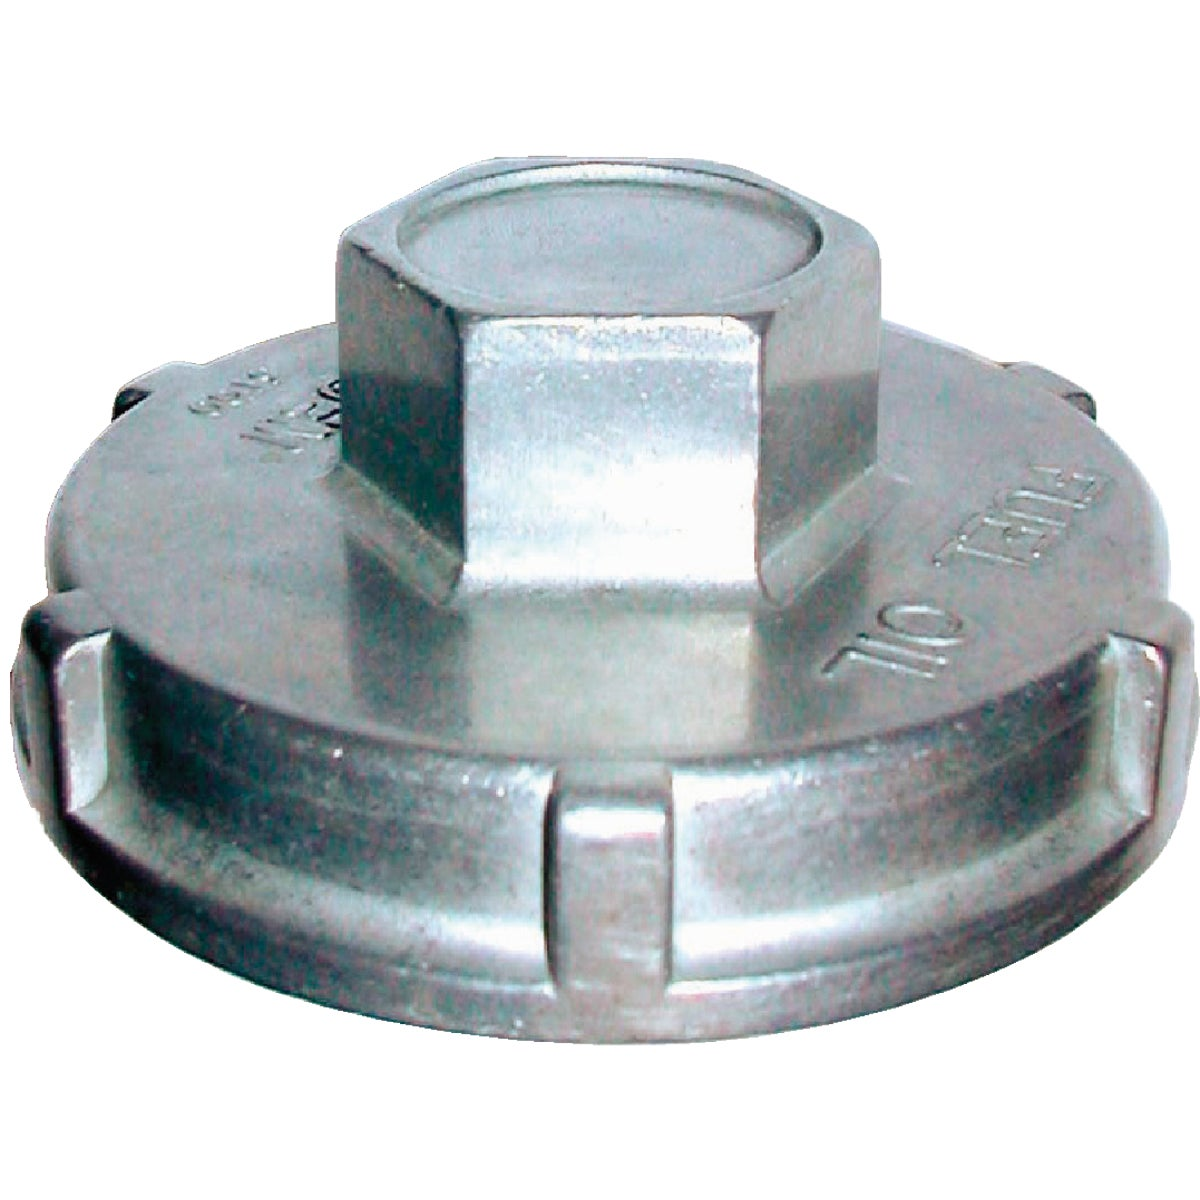 SPEEDFILL OIL TANK CAP - 13100 by Rheem